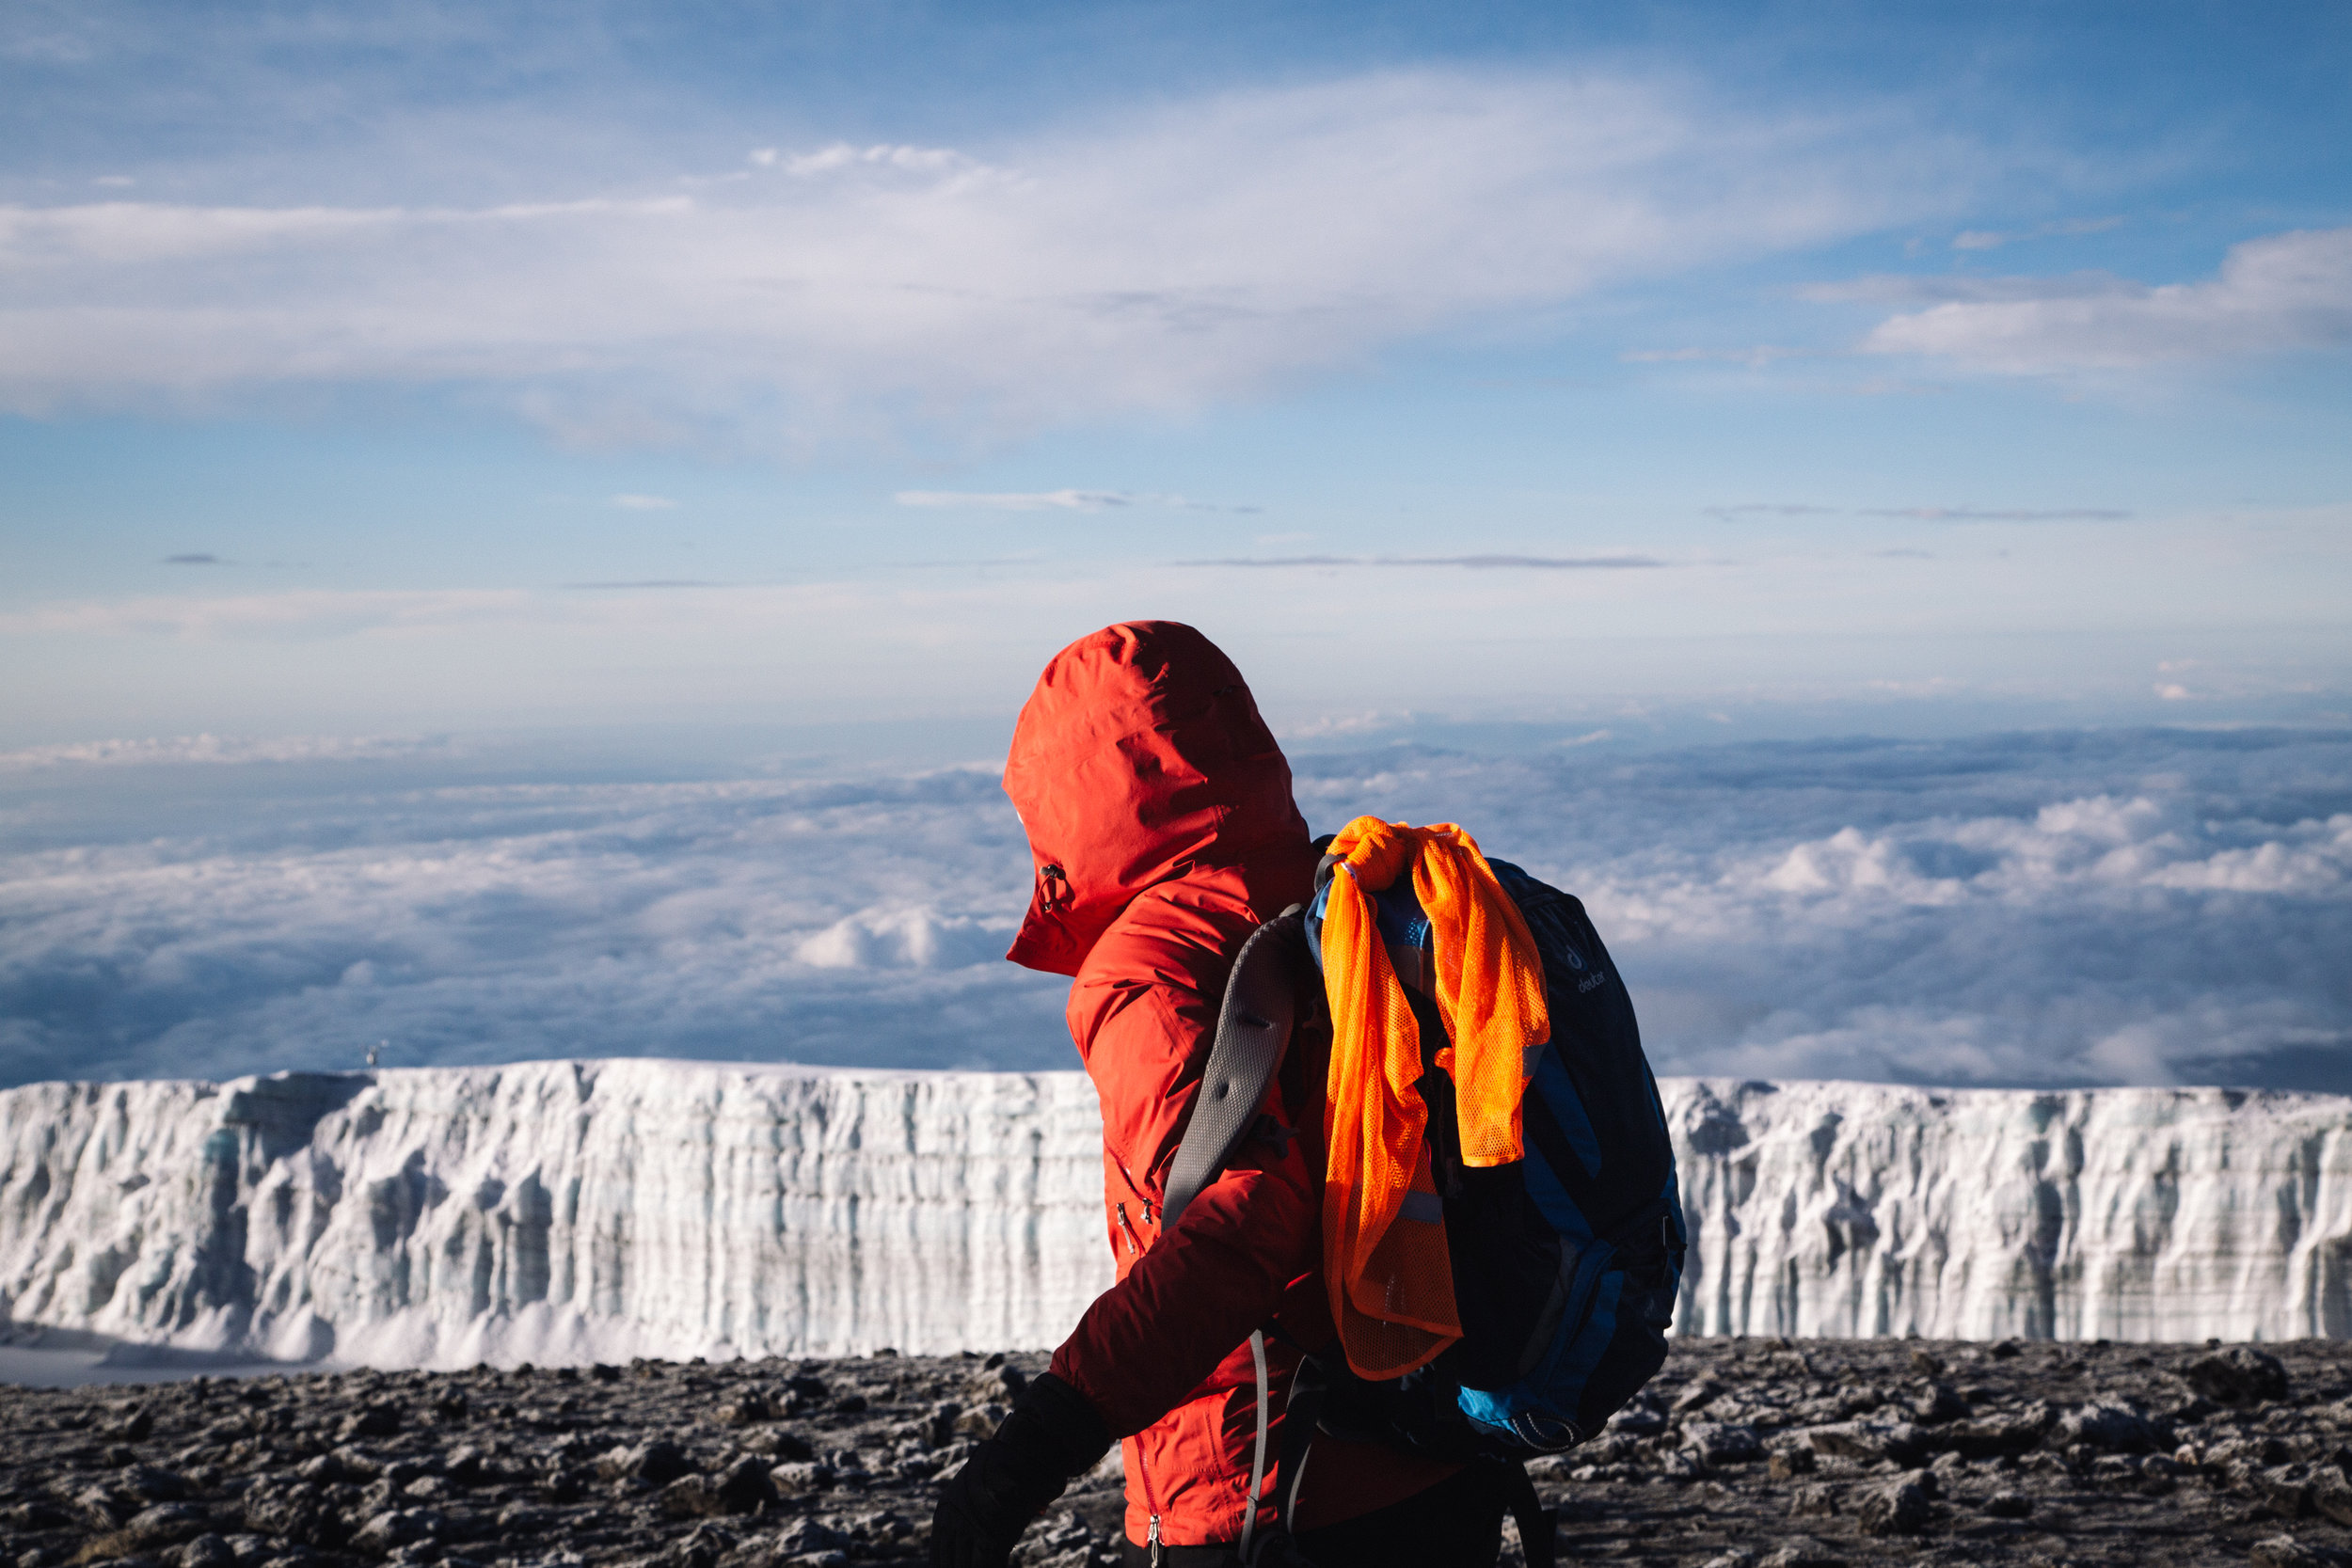 KILIMANJARO - FREQUENTLY ASKED QUESTIONS